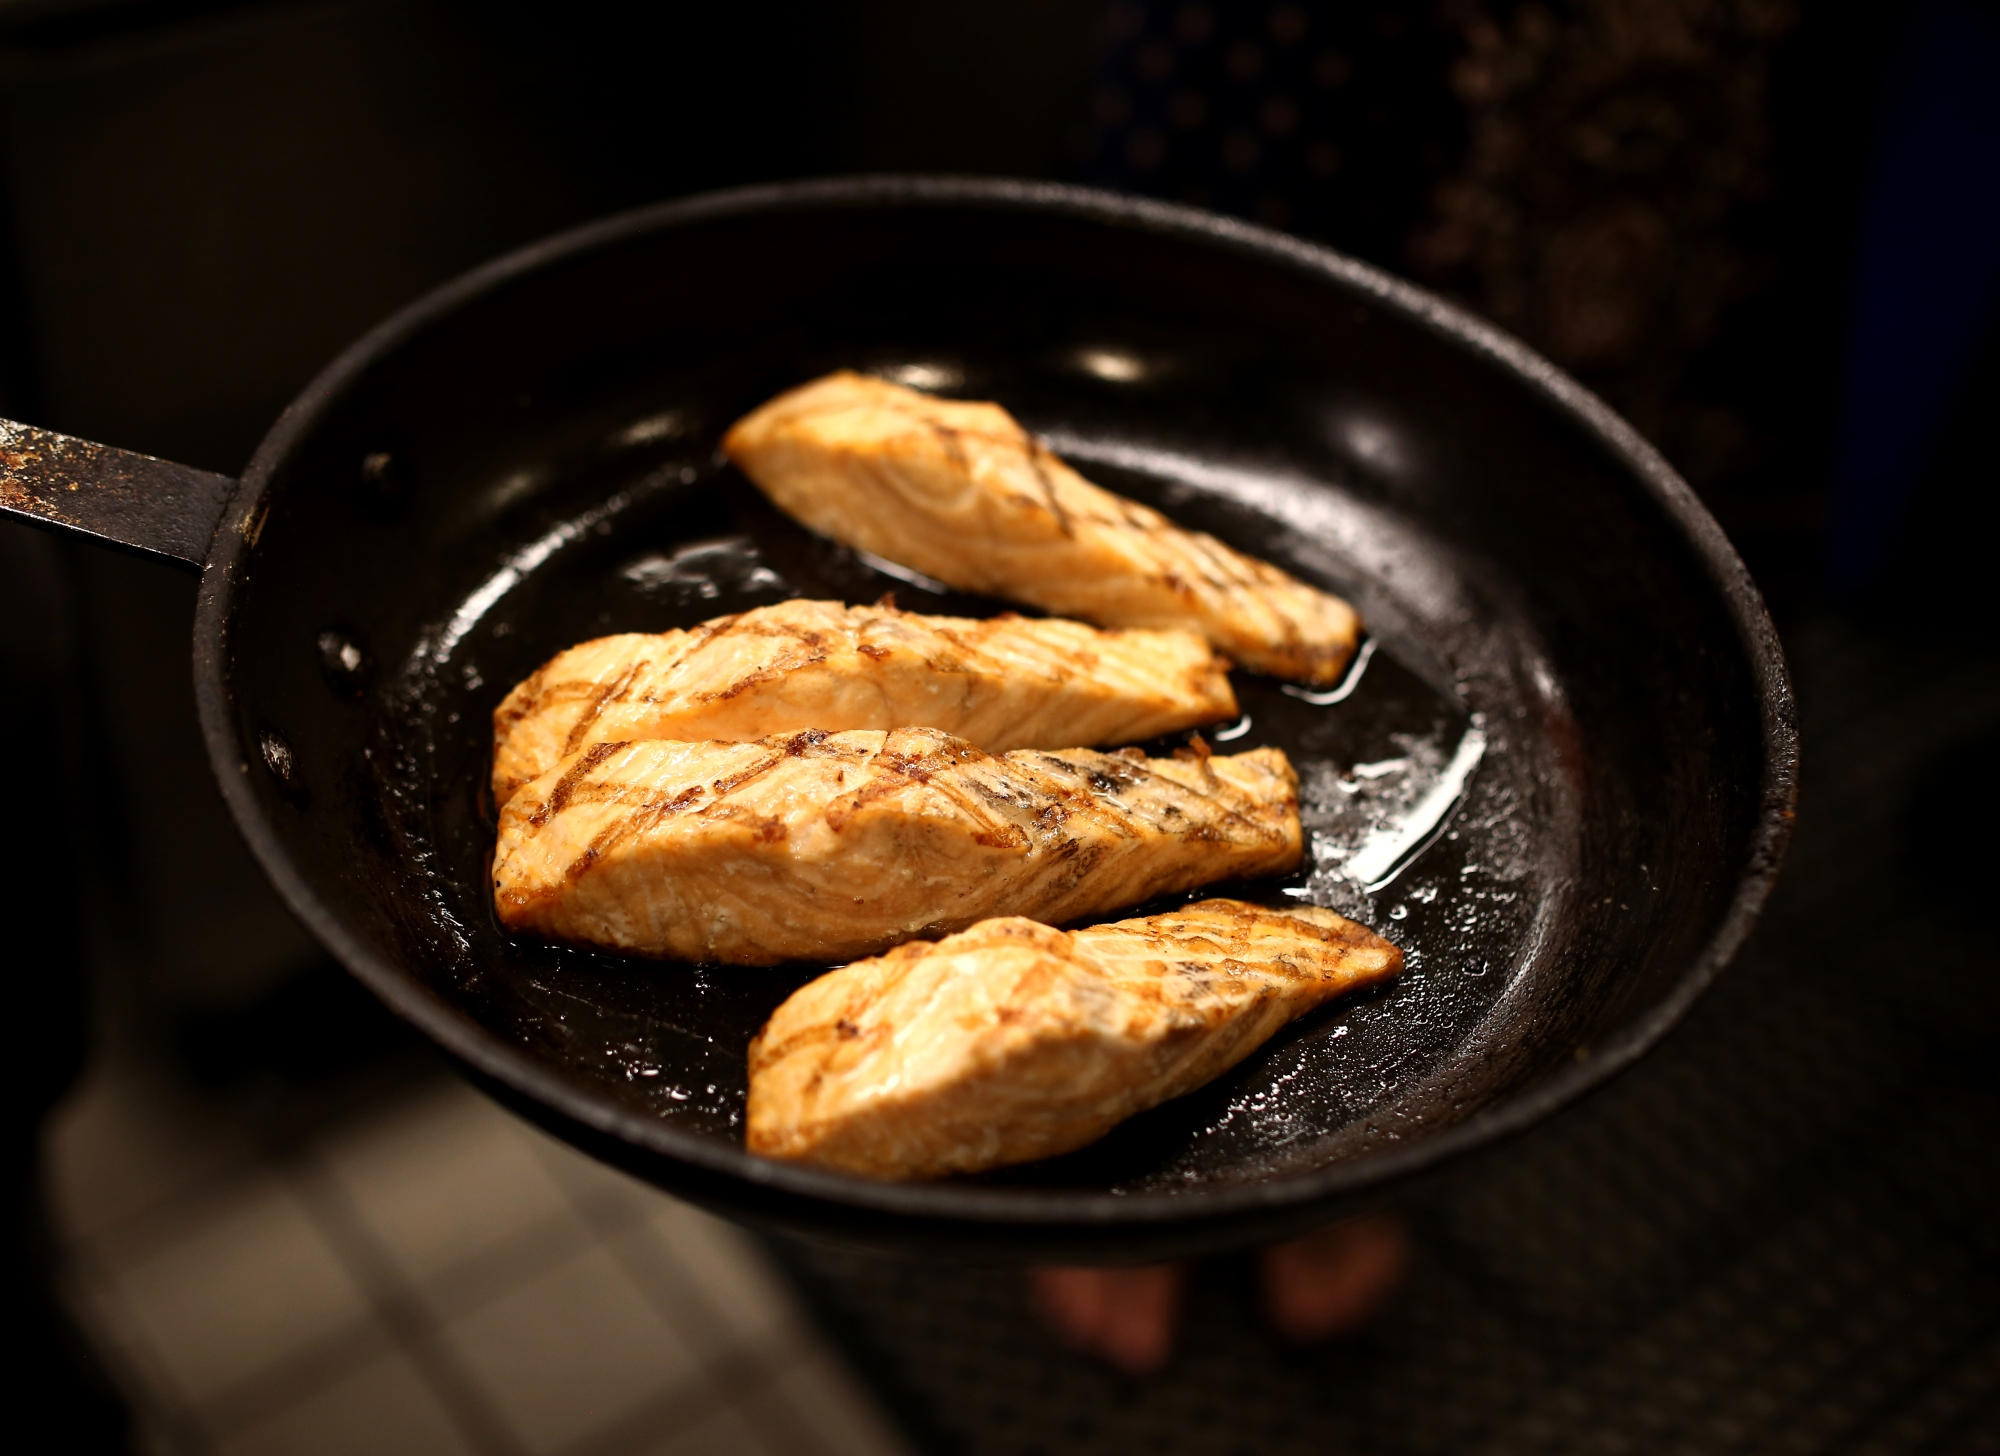 The salmon is finished baking and looks amazing. You can see the delicious, natural oils from the salmon in the pan.